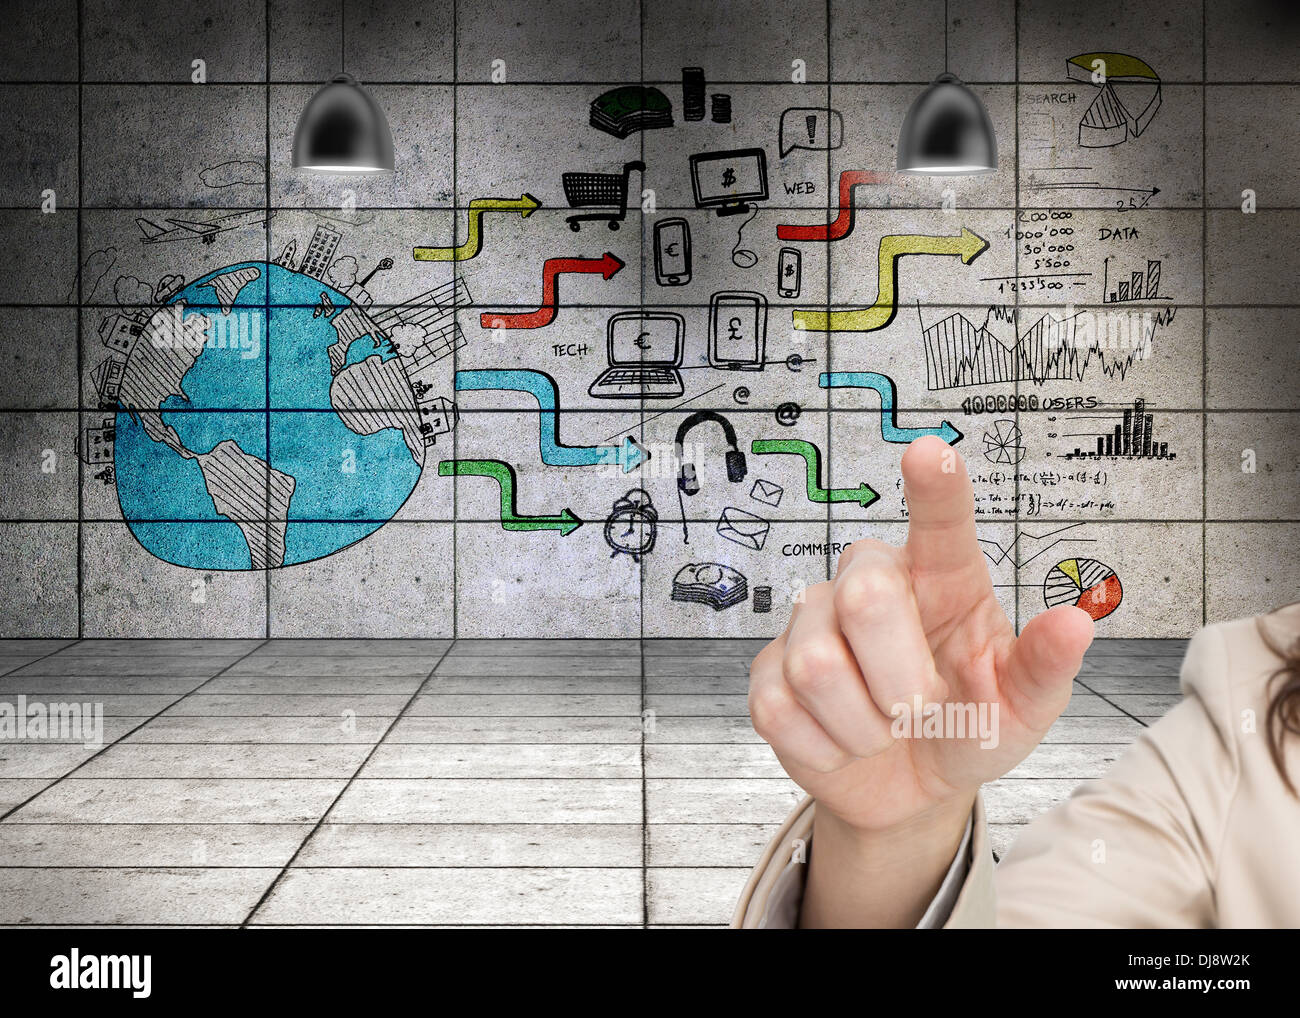 Womans hand pointing against wall background showing global business development - Stock Image